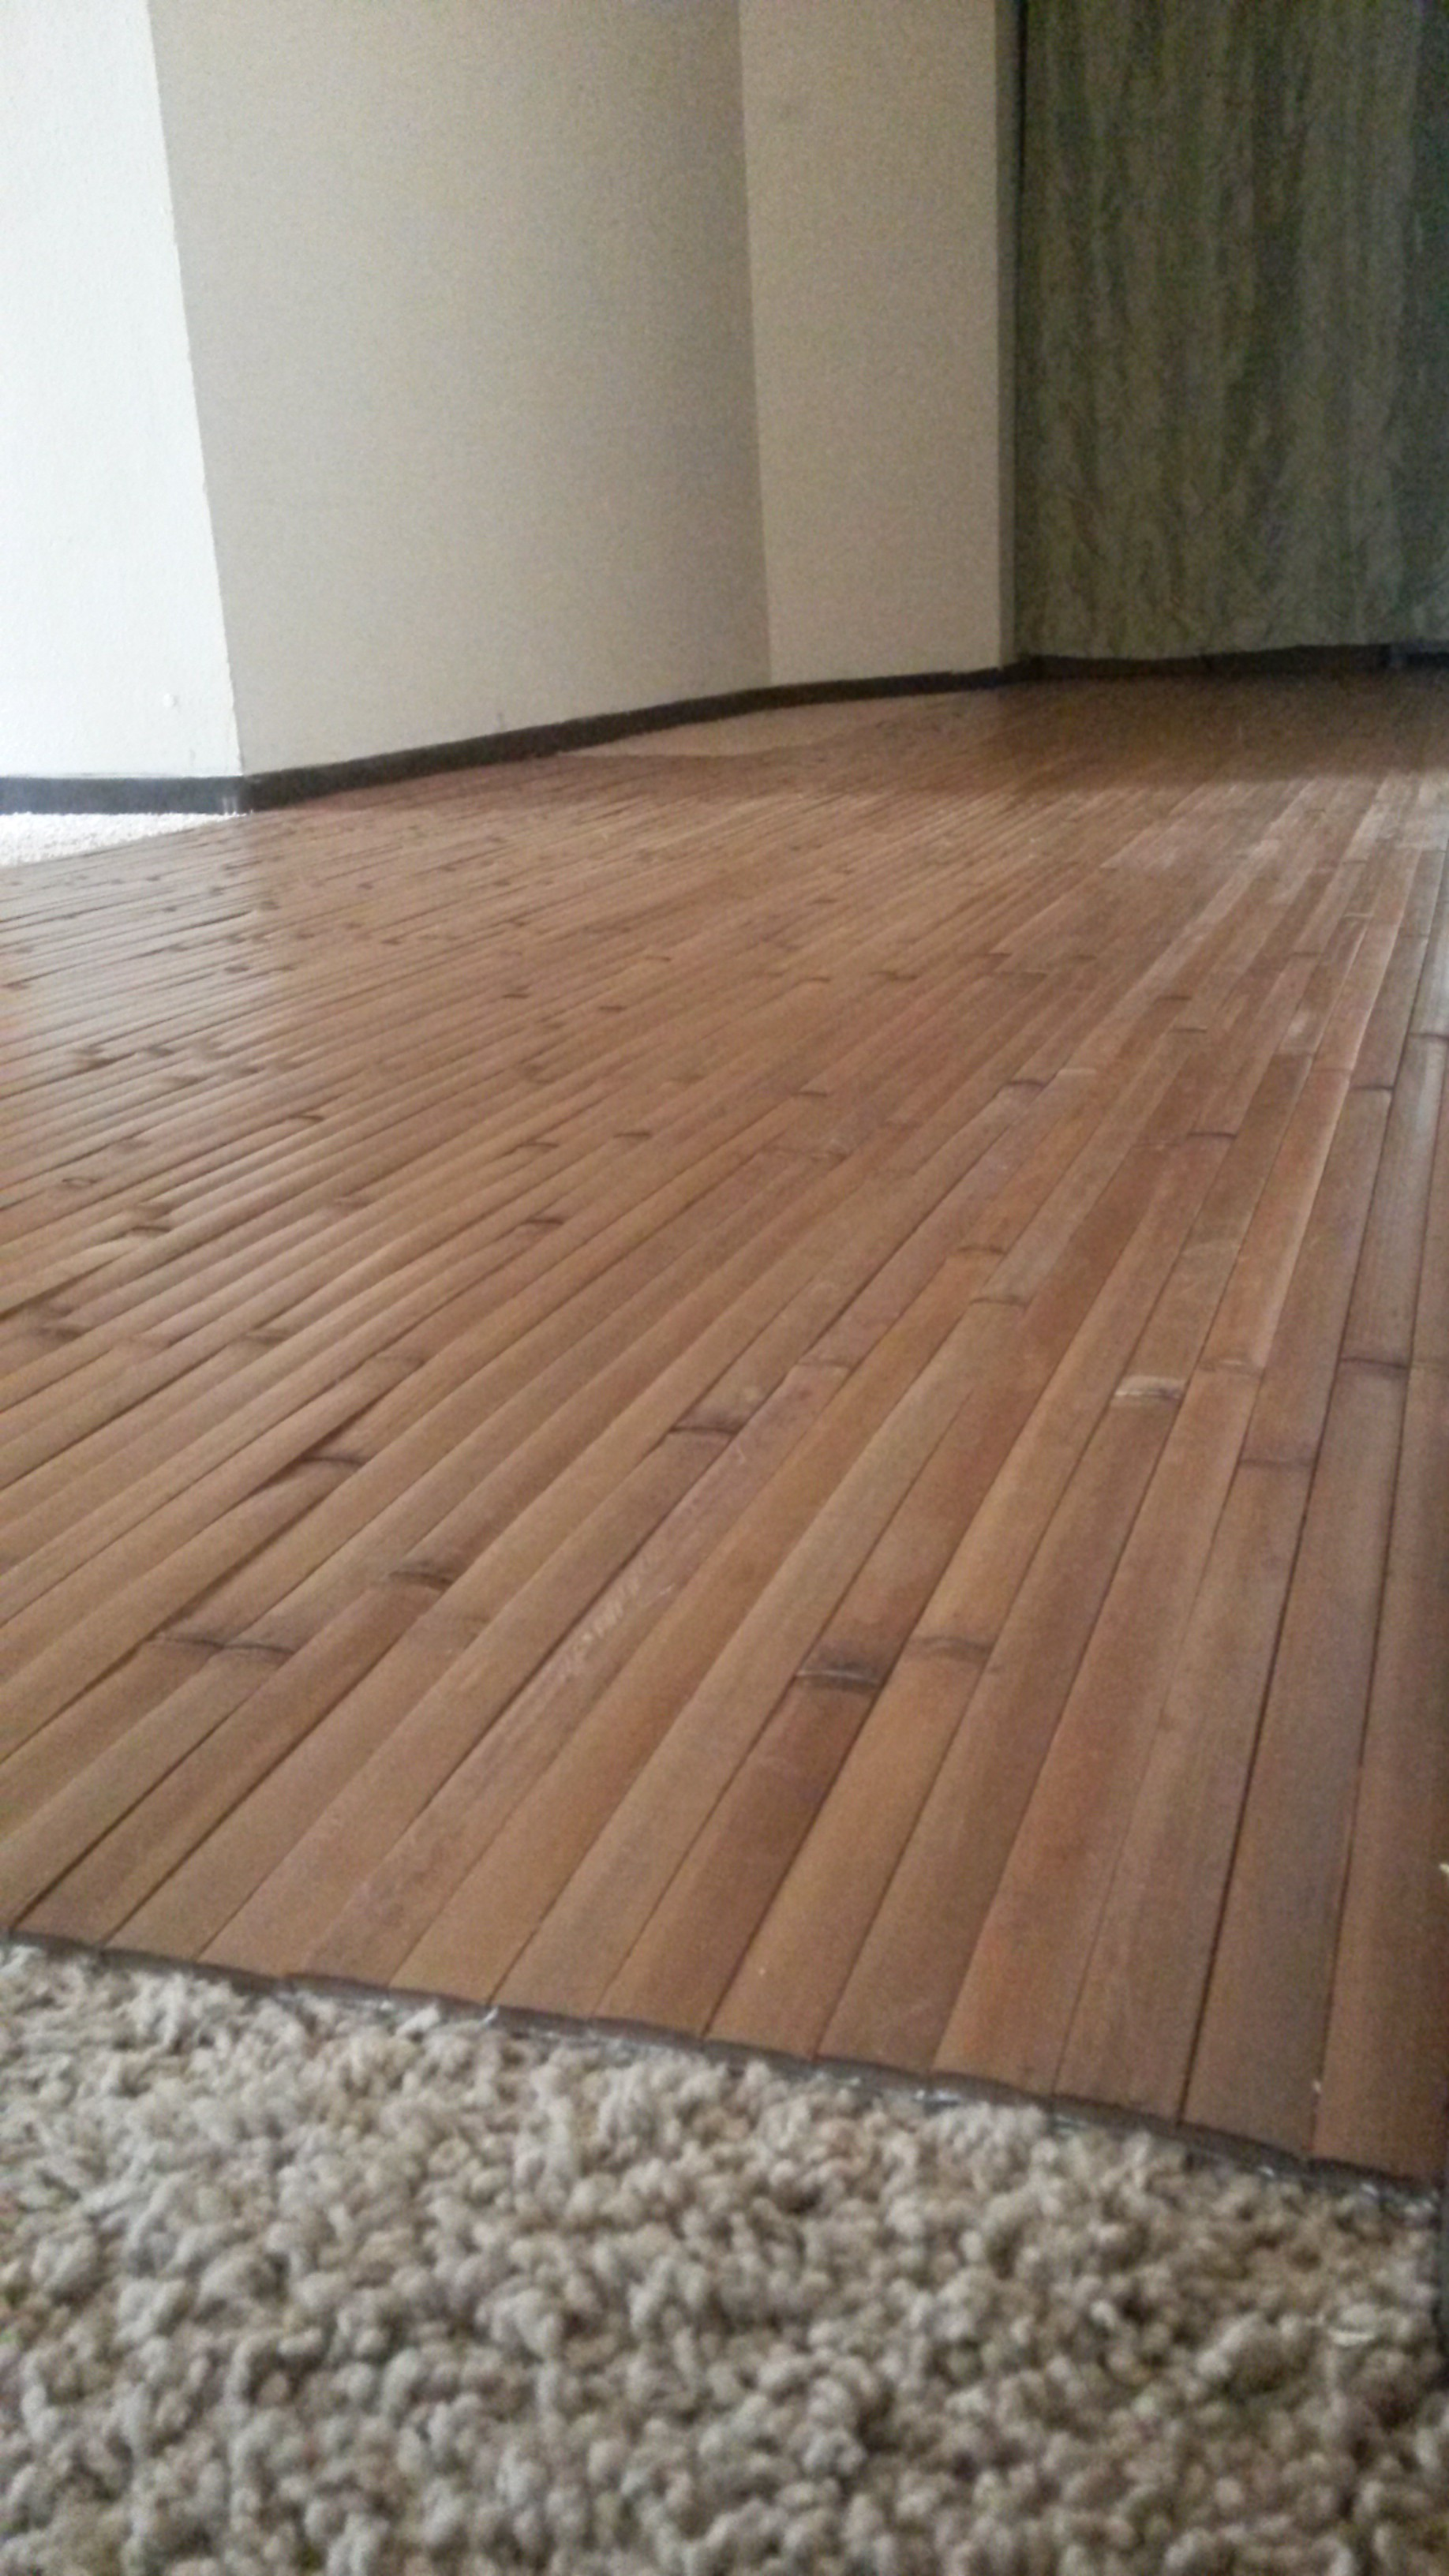 Best flooring over carpet solution ever skywaymom 8 x 4 bamboo wall panels make great flooring over carpet dailygadgetfo Gallery